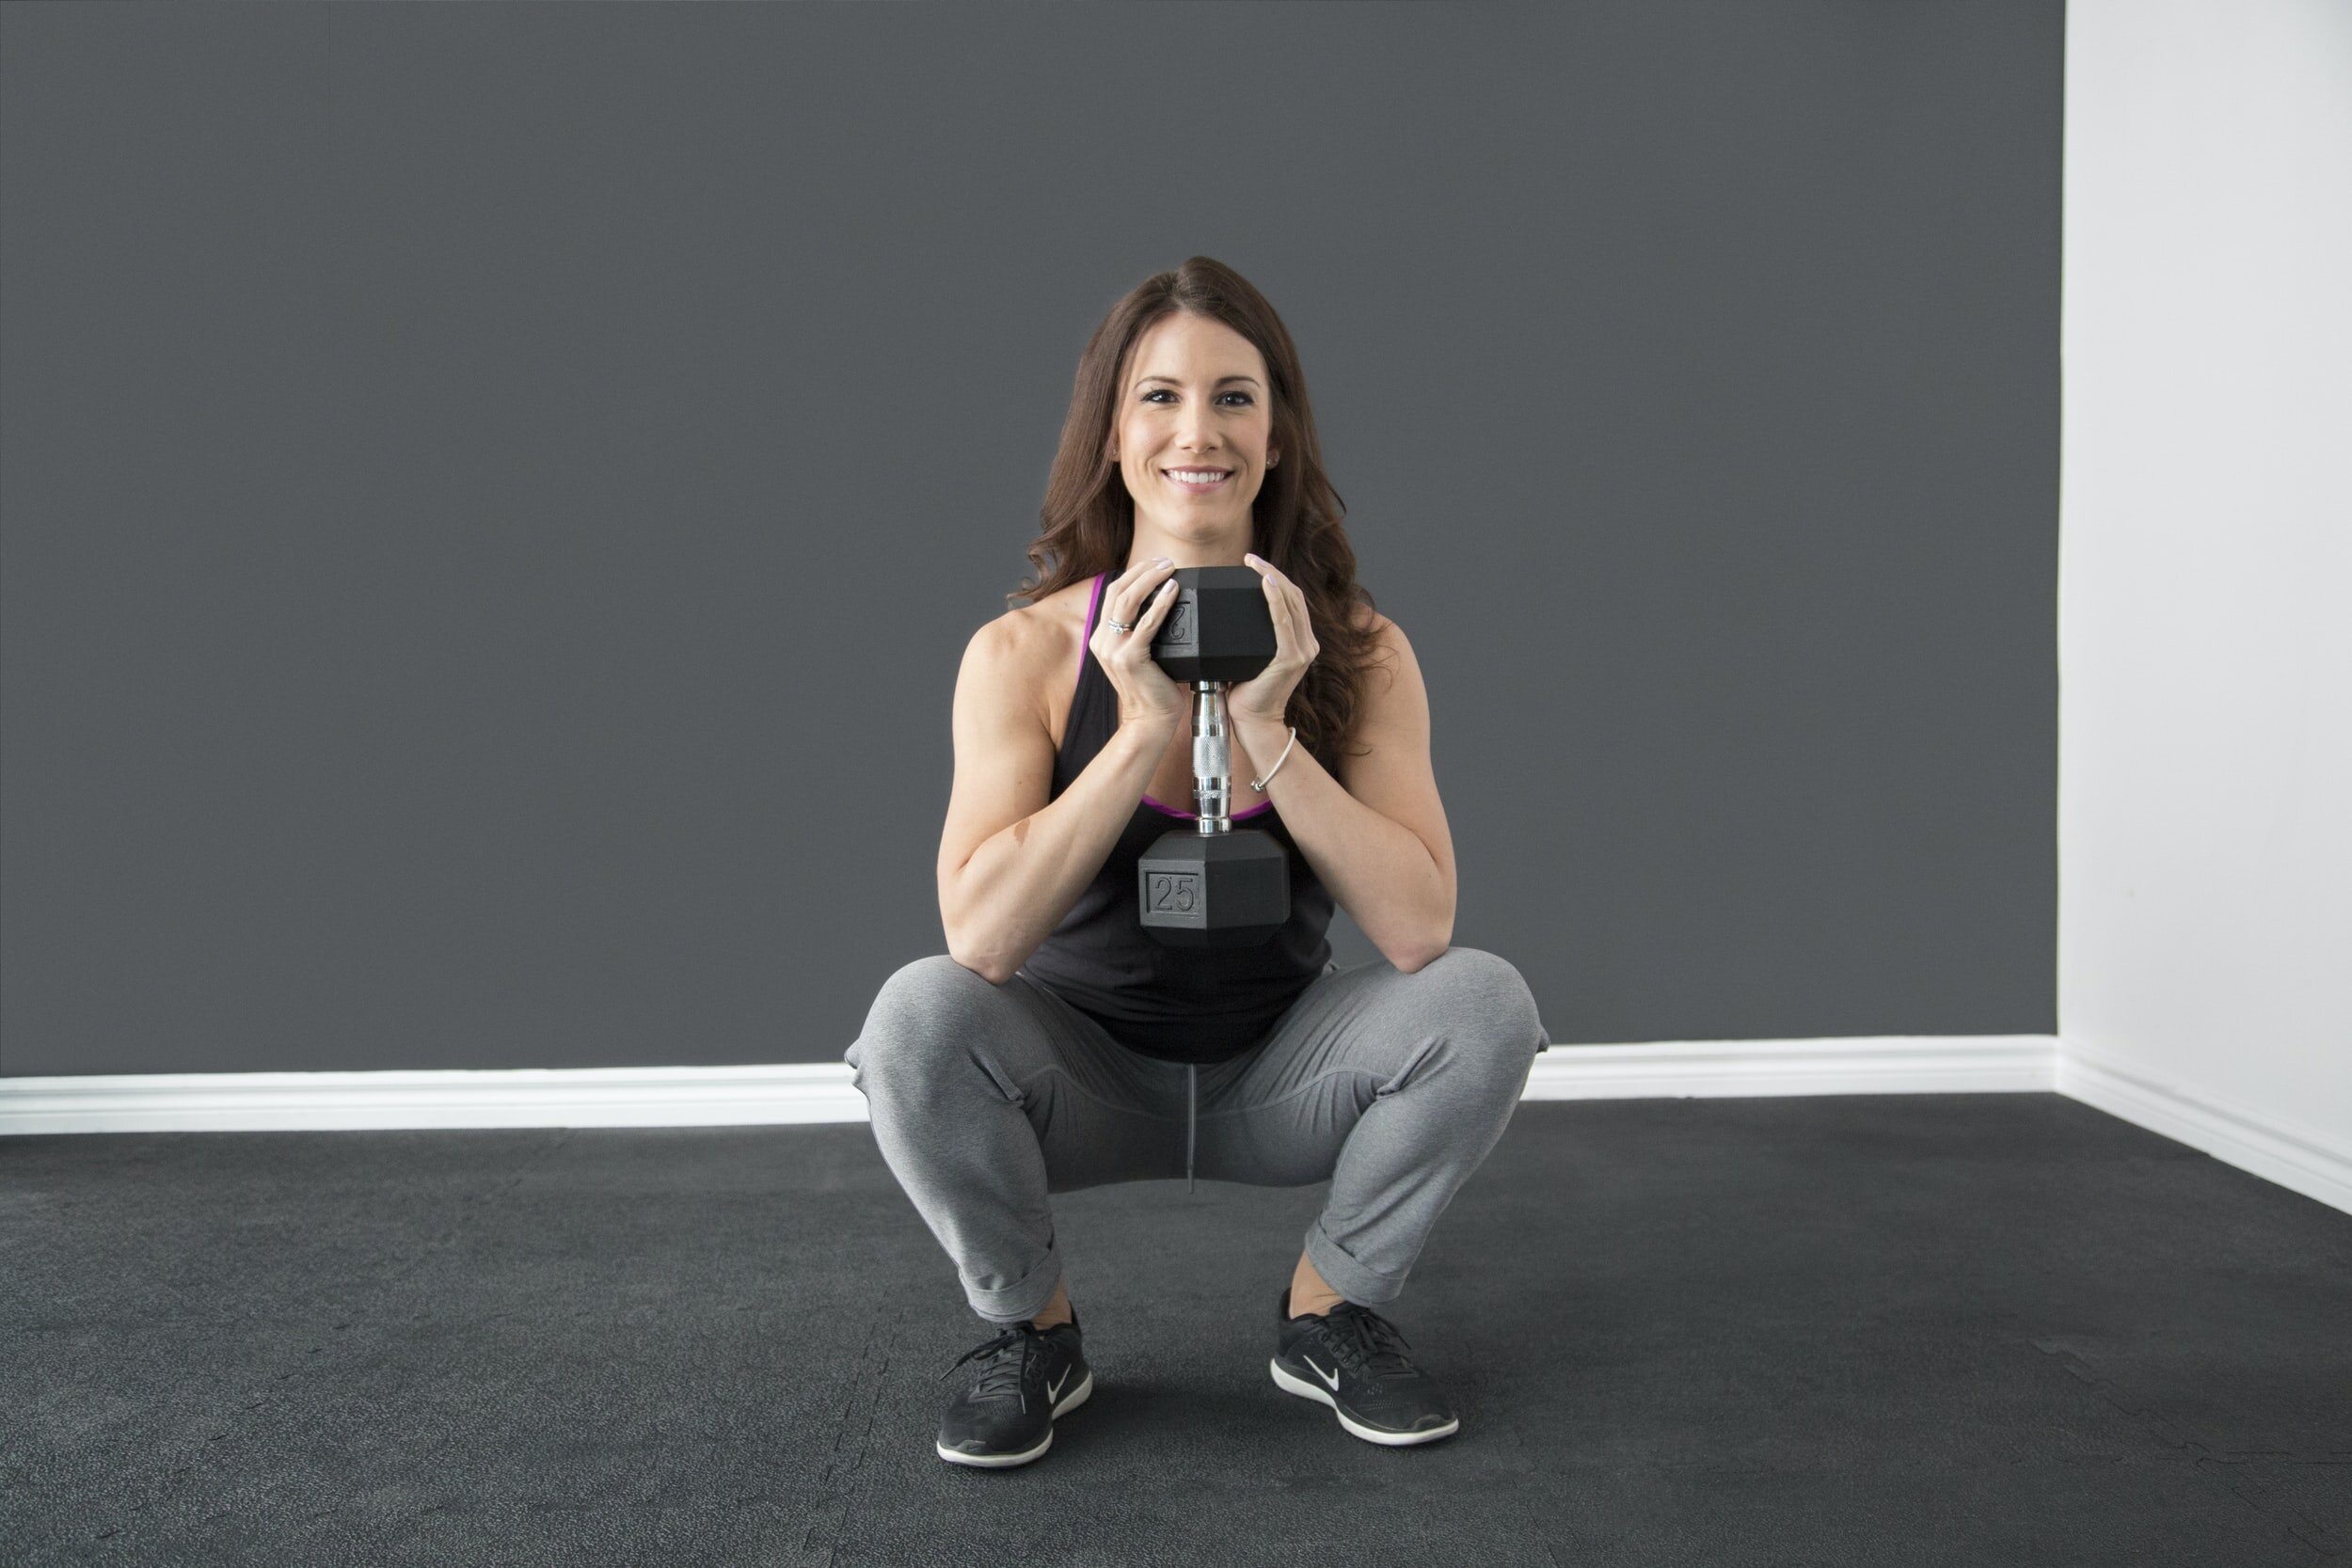 4 Gym Based Workouts For Beginners The Gym Starter Start And Succeed In Your Fitness Journey